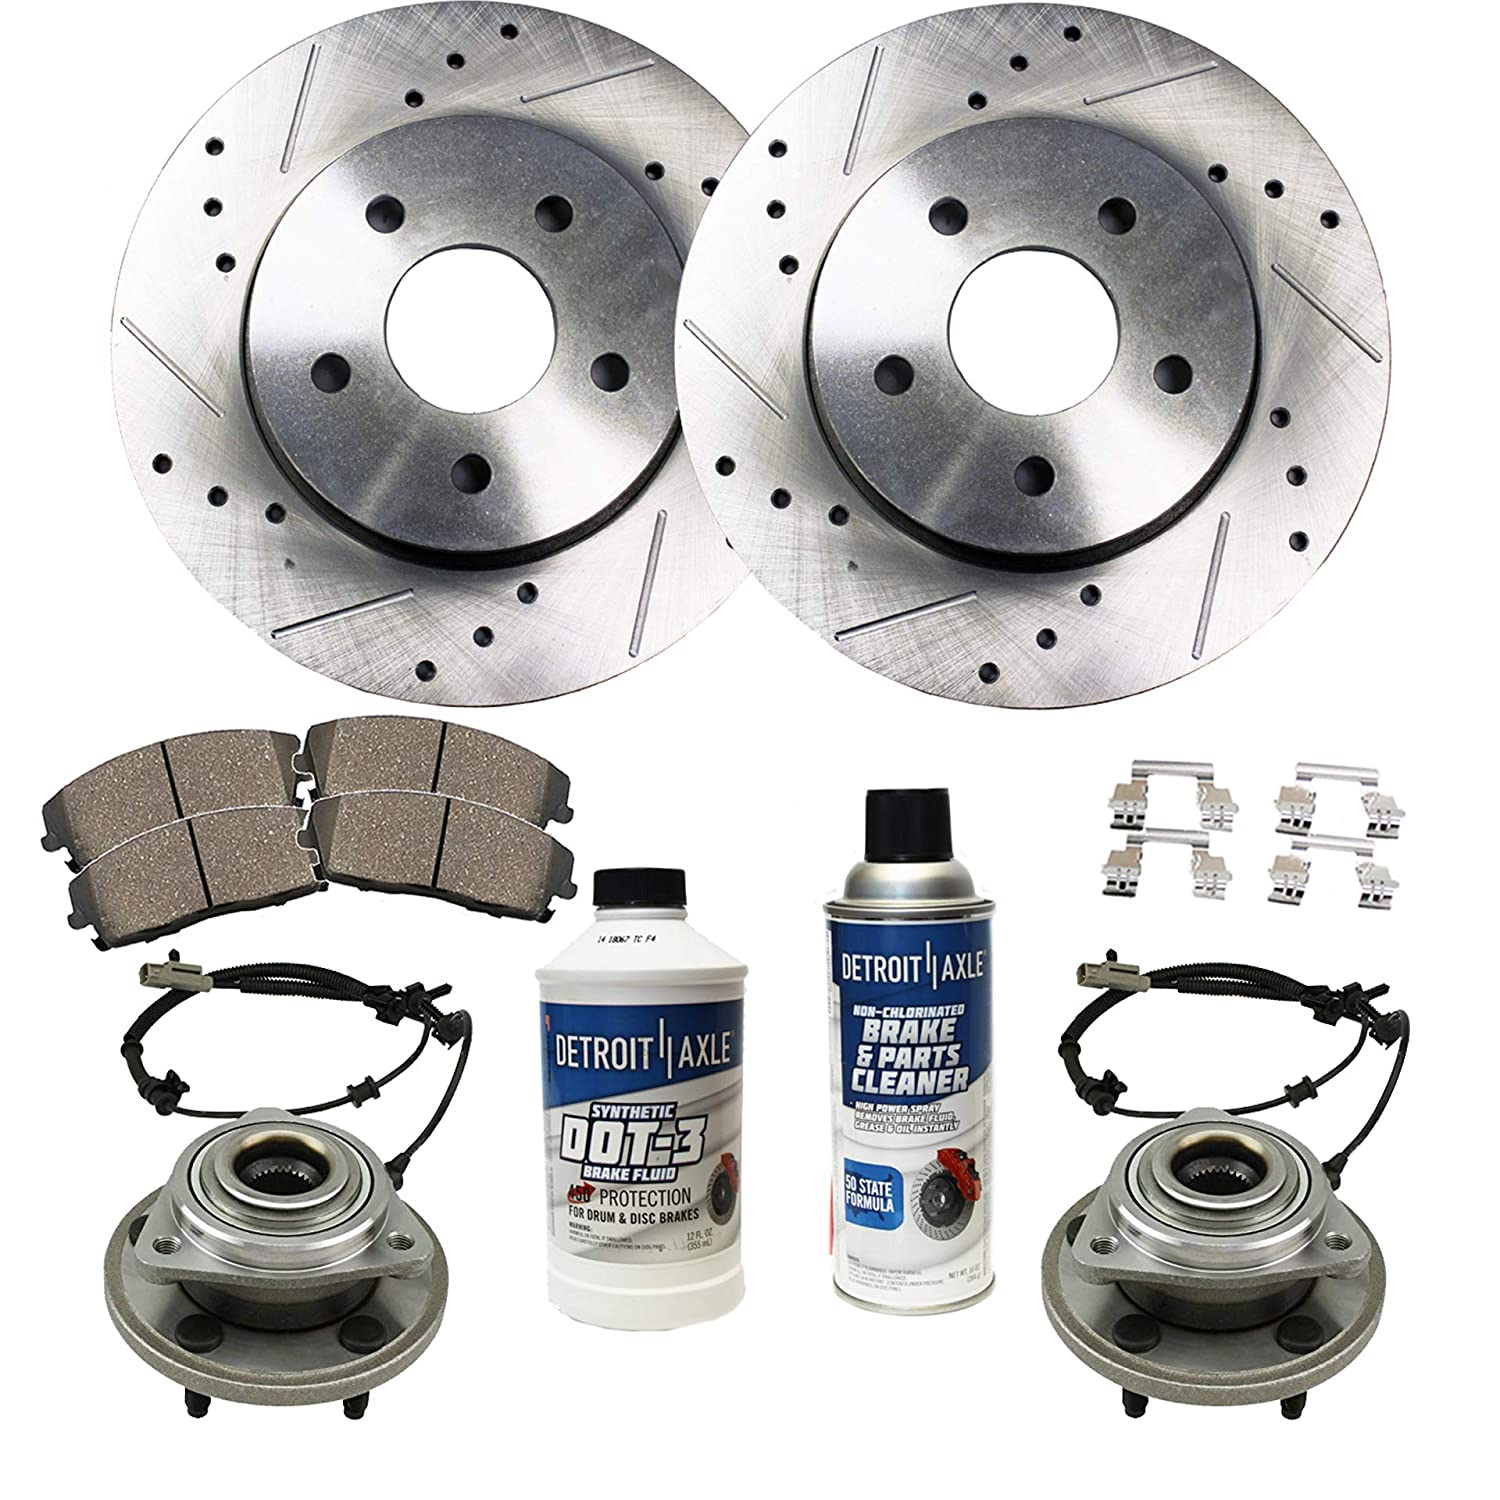 Detroit Axle - Front Wheel Bearing & Hub, Drilled Brake Rotors w/Ceramic  Pads w/Hardware & Brake Cleaner & Fluid for 2006 2007 2008 2009 2010 Jeep